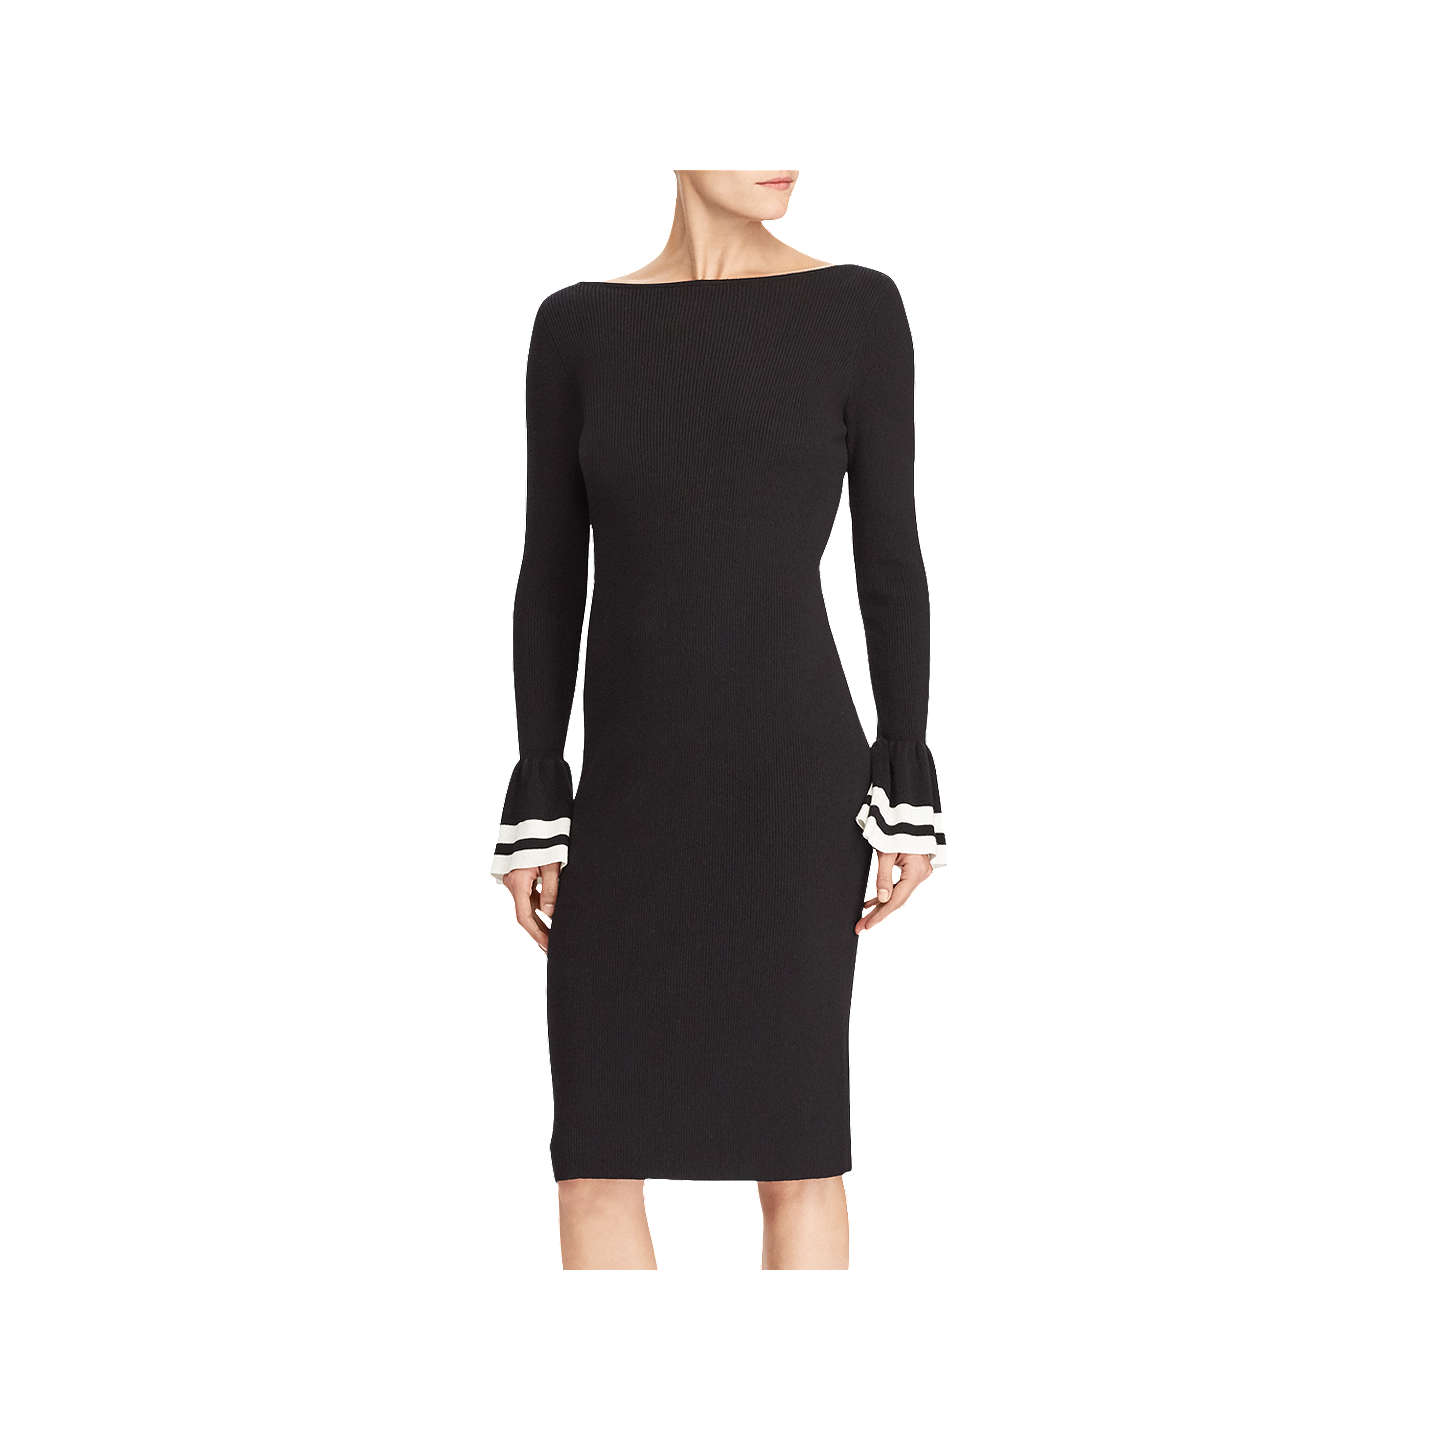 BuyLauren Ralph Lauren Ruffle Cuff Dress, Polo Black/Mascarpone Cream, XS  Online at ...